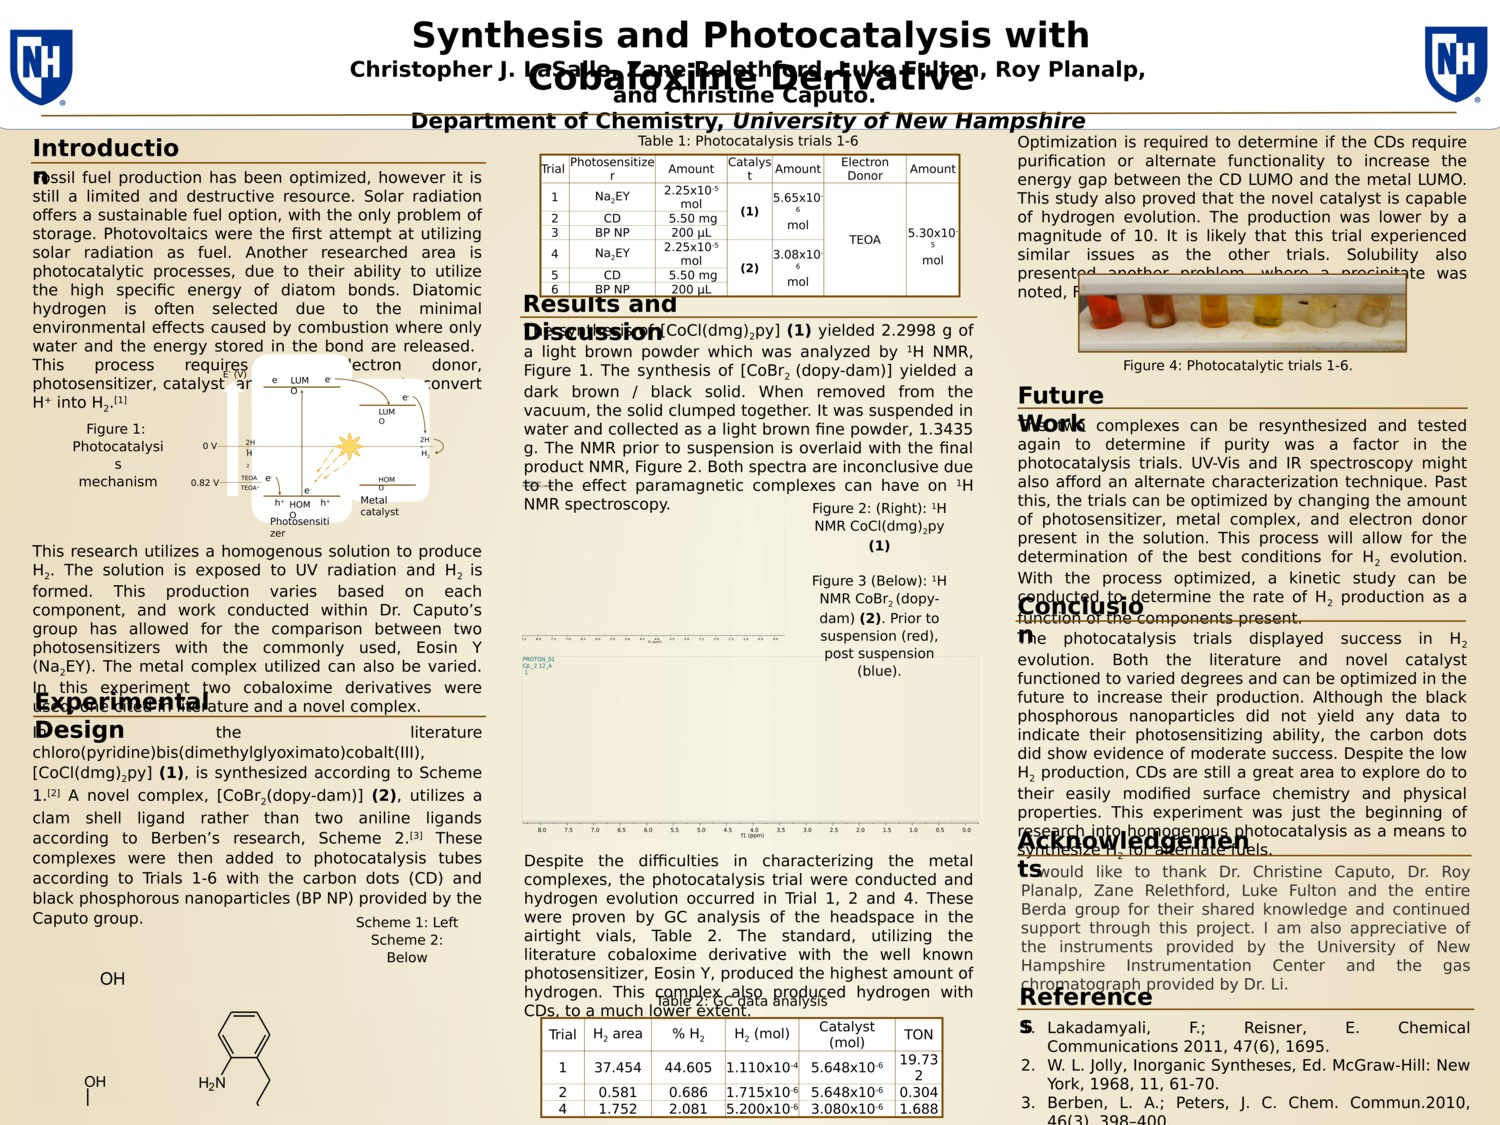 Synthesis And Photocatalysis With Cobaloxime Derivatives by cjl1014